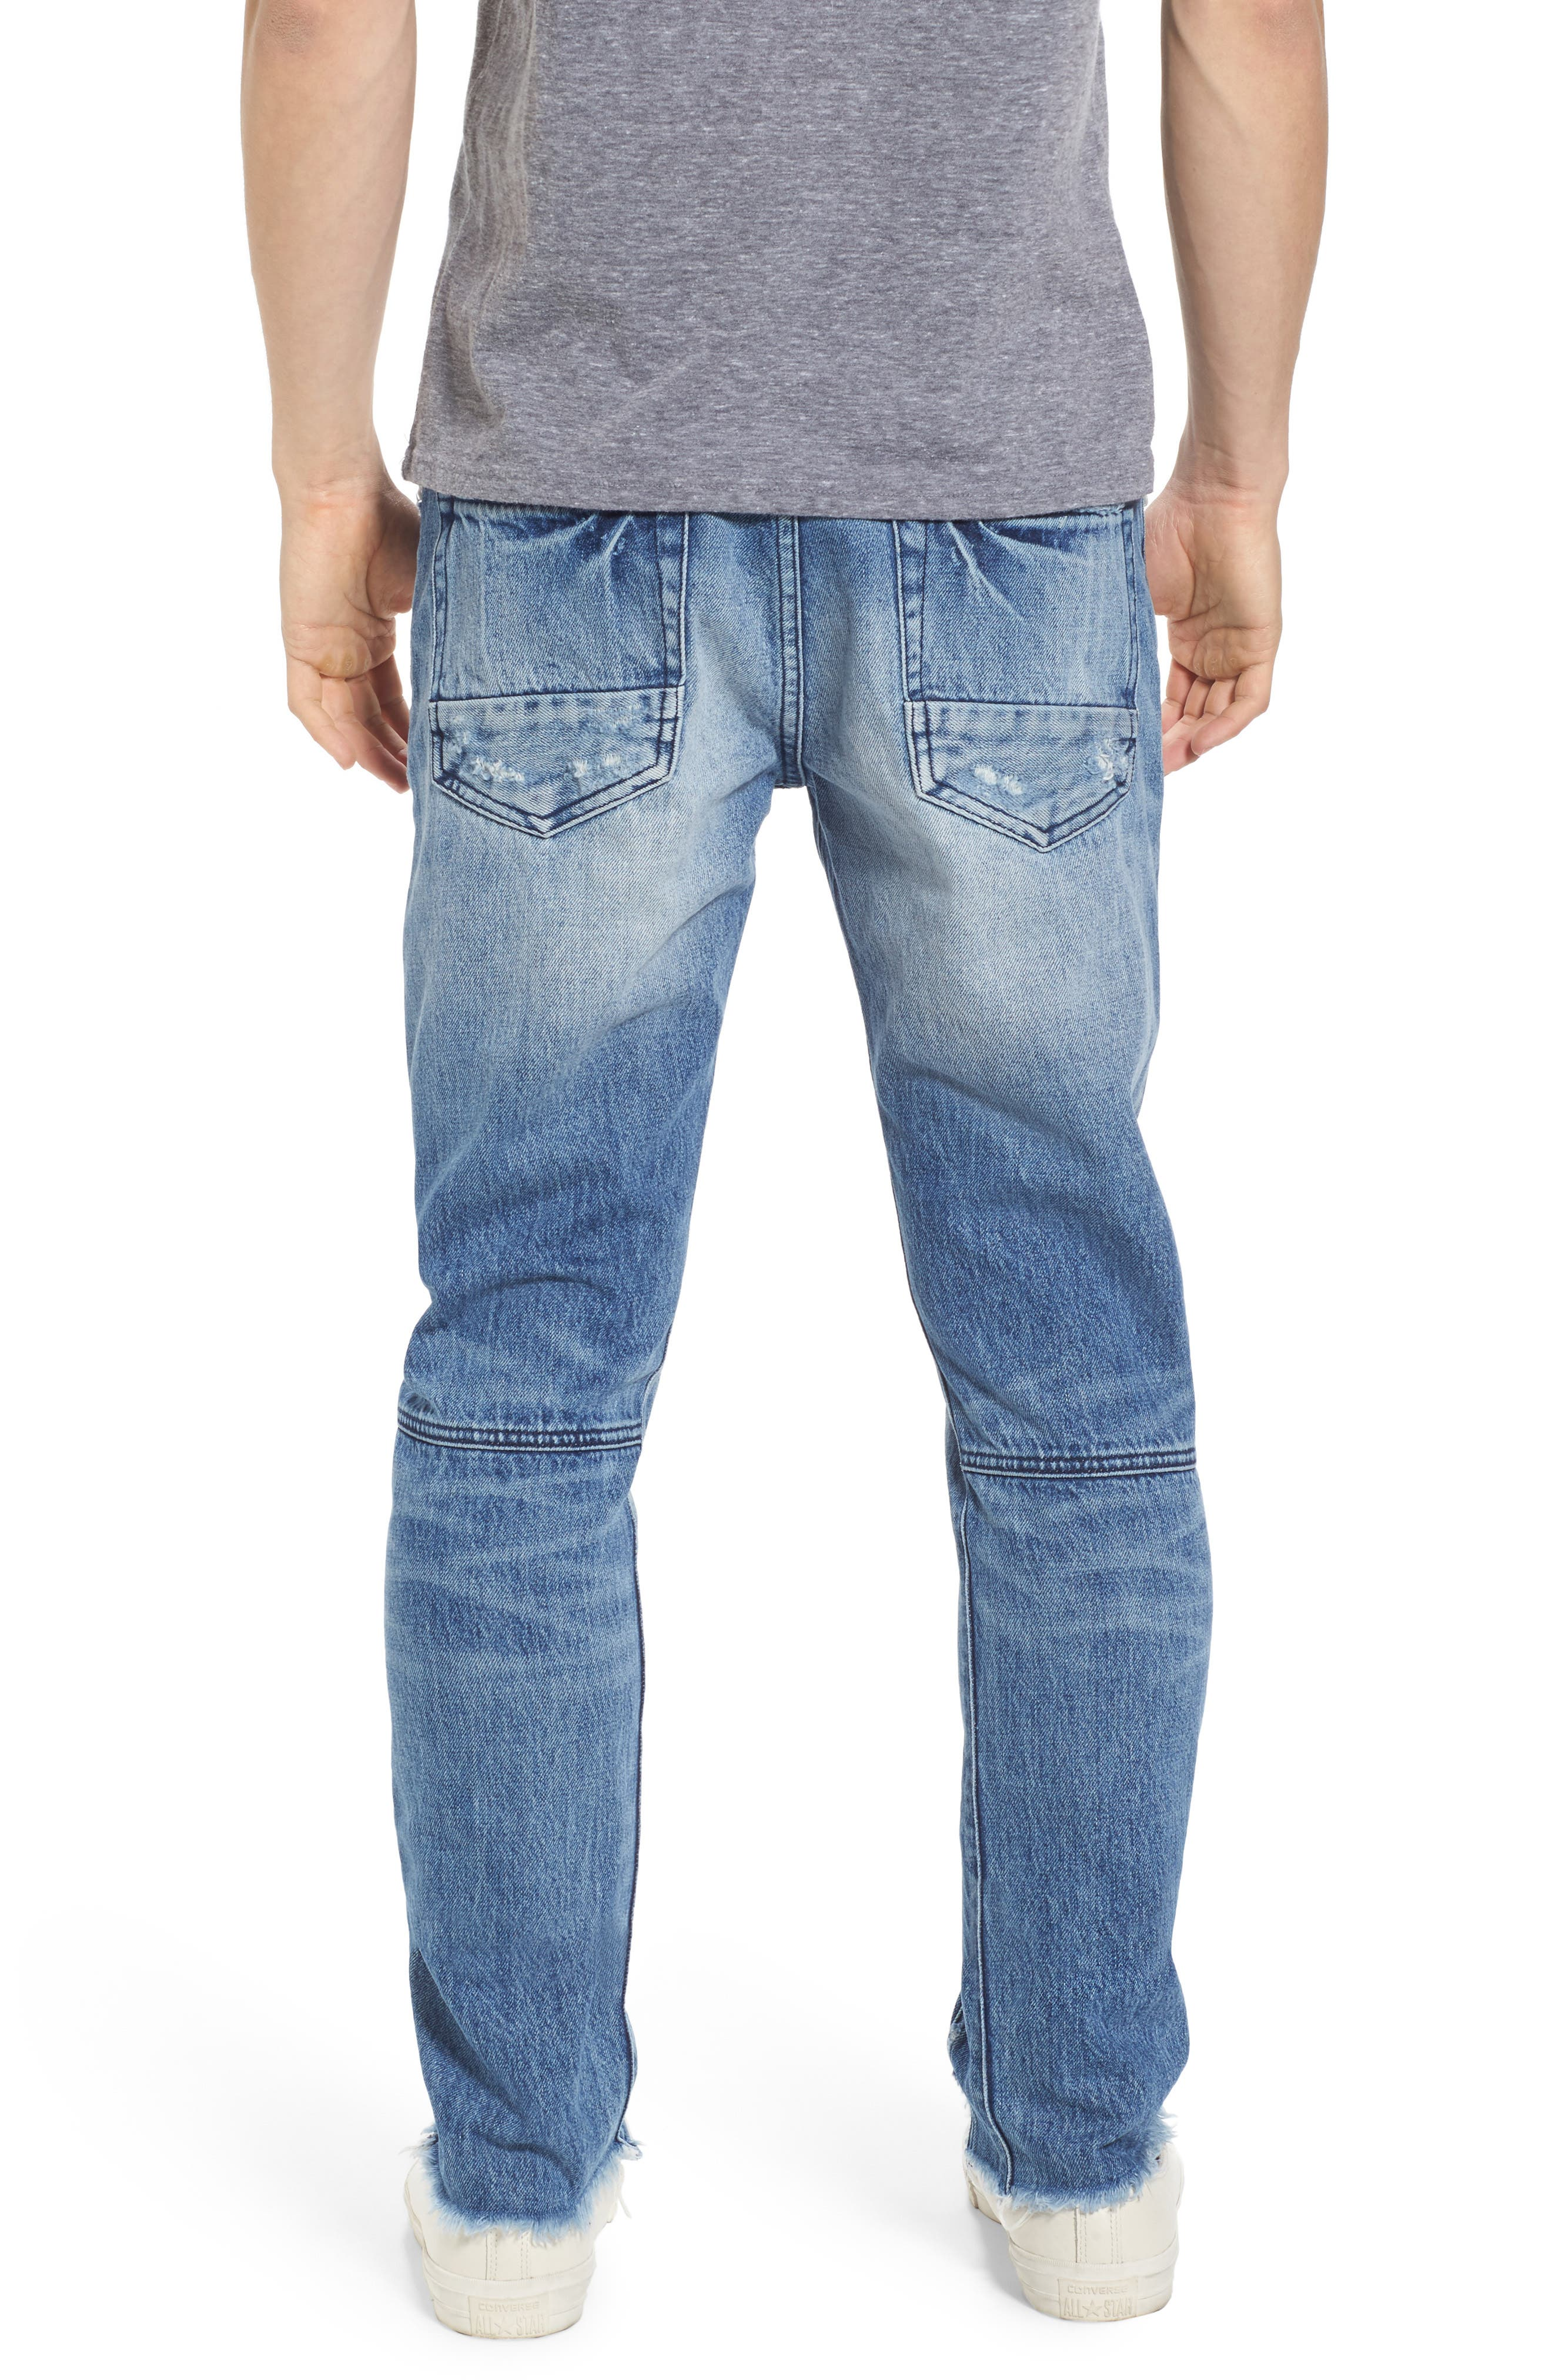 Le Sabre Tapered Fit Jeans,                             Alternate thumbnail 2, color,                             490